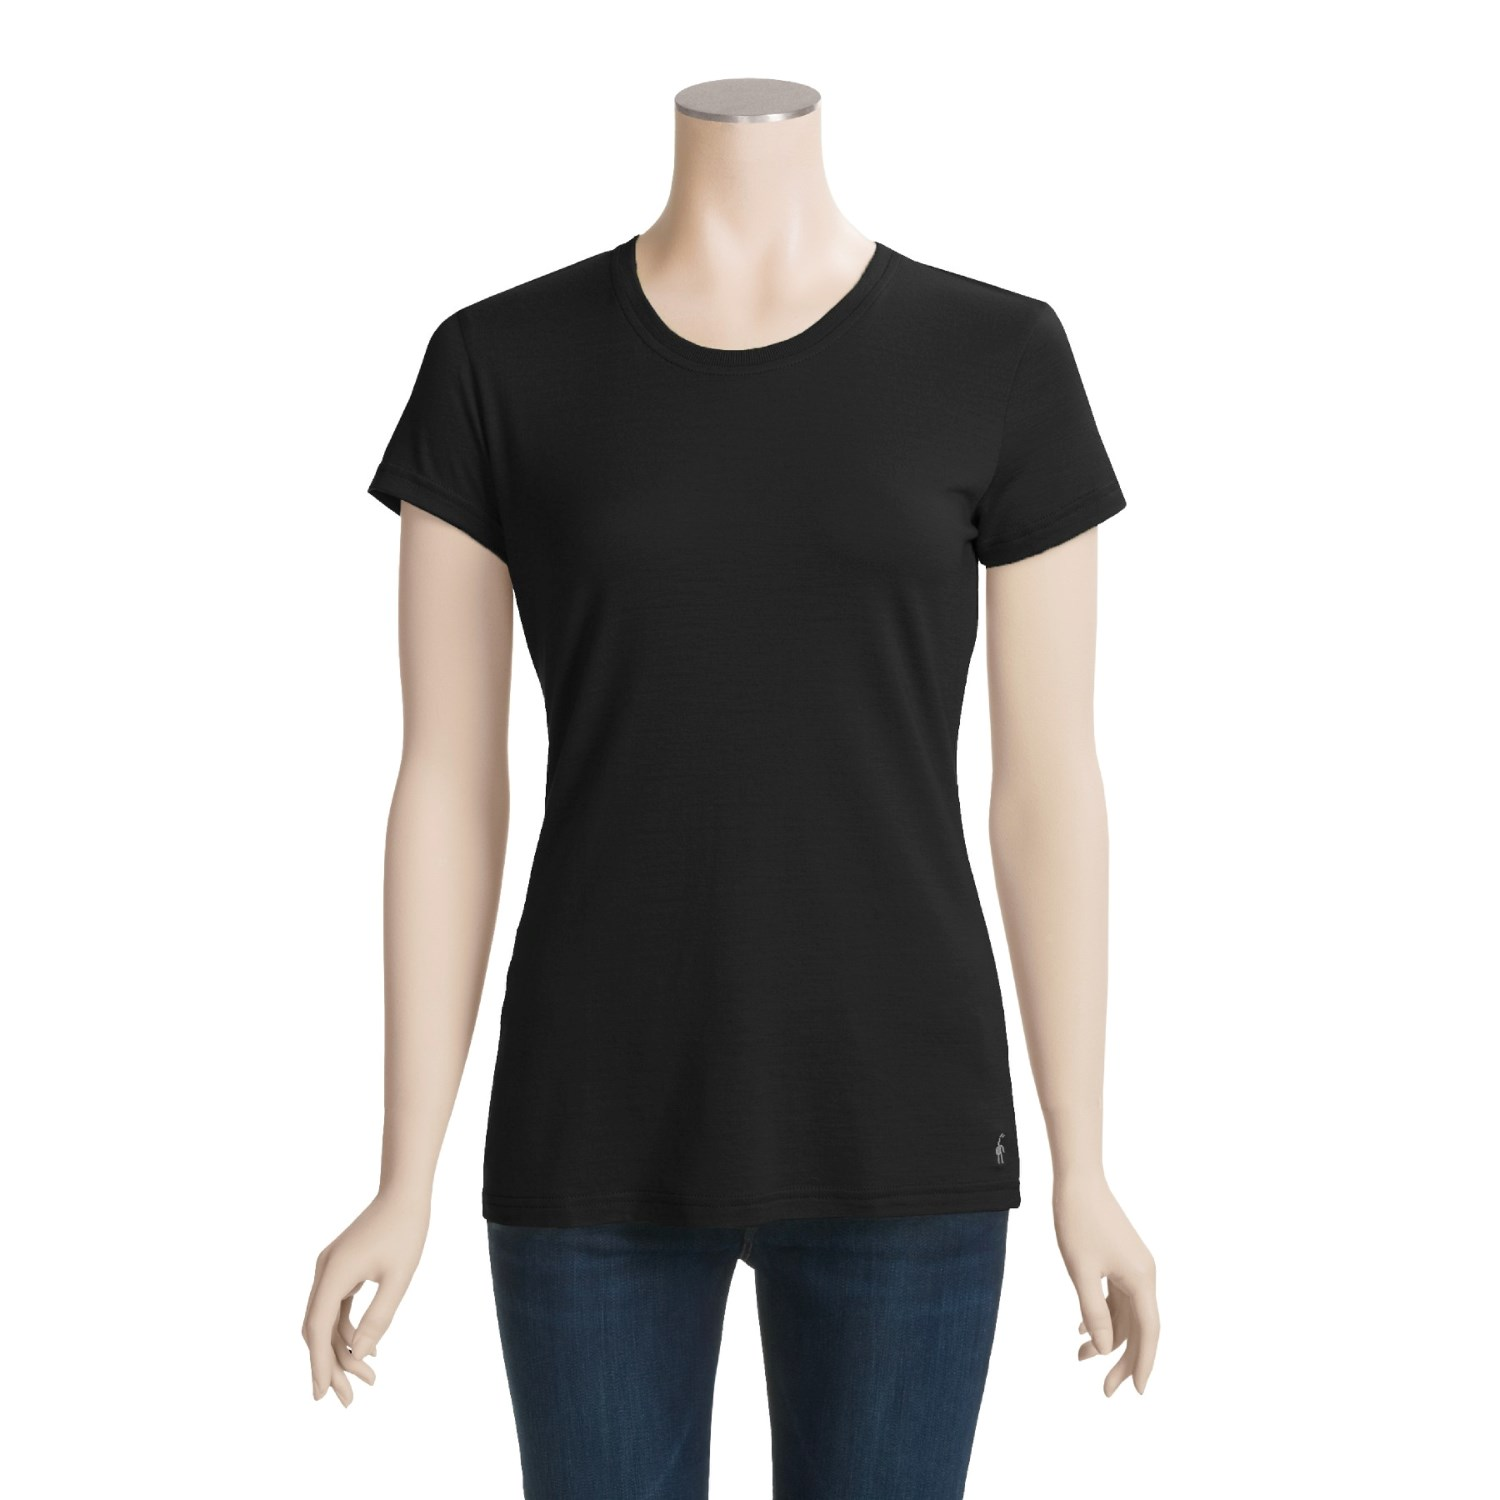 Smartwool sw t shirt for women 3060a for Merino wool shirt womens